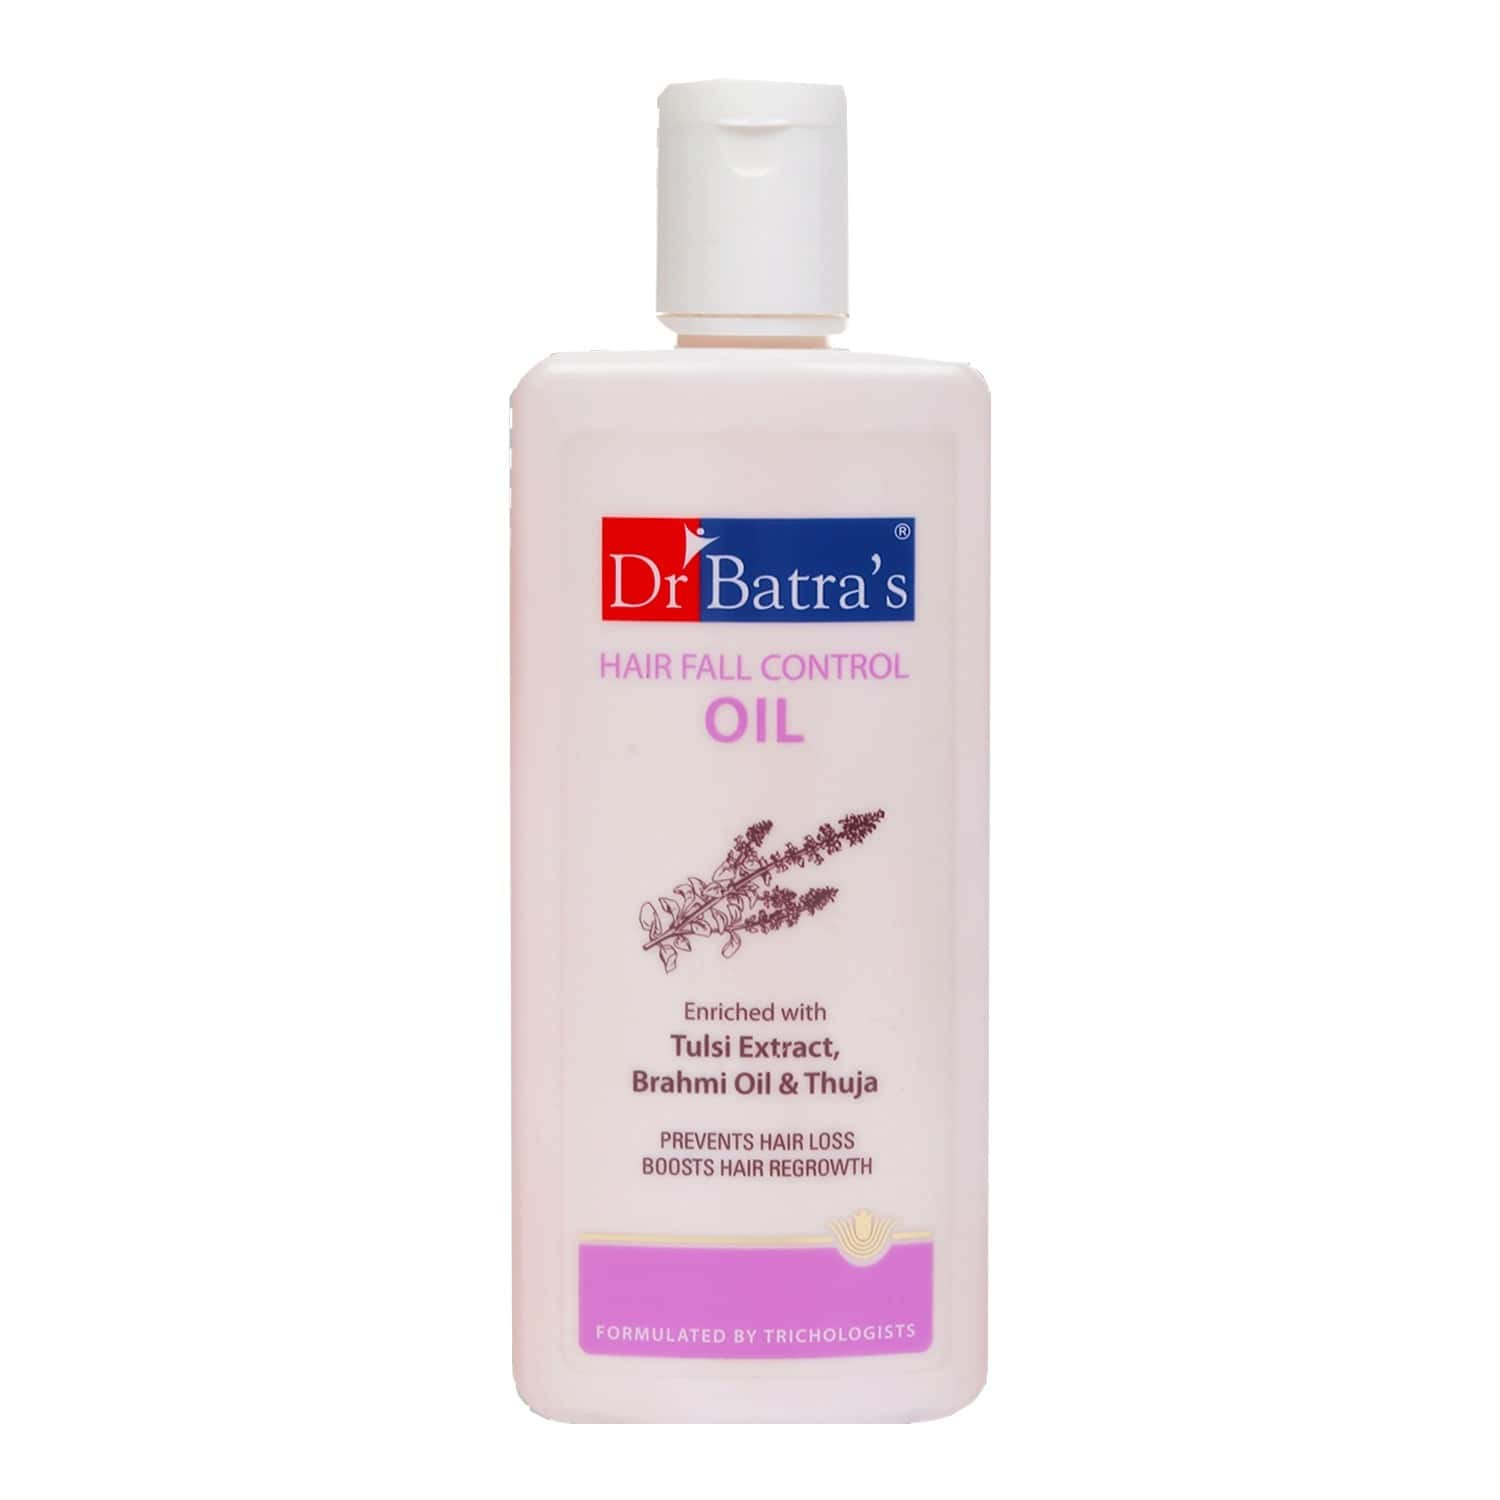 Dr Batra's Hair Fall Control Oil Enriched With Tulsi Extract, Brahmi Oil & Thuja - 200 Ml